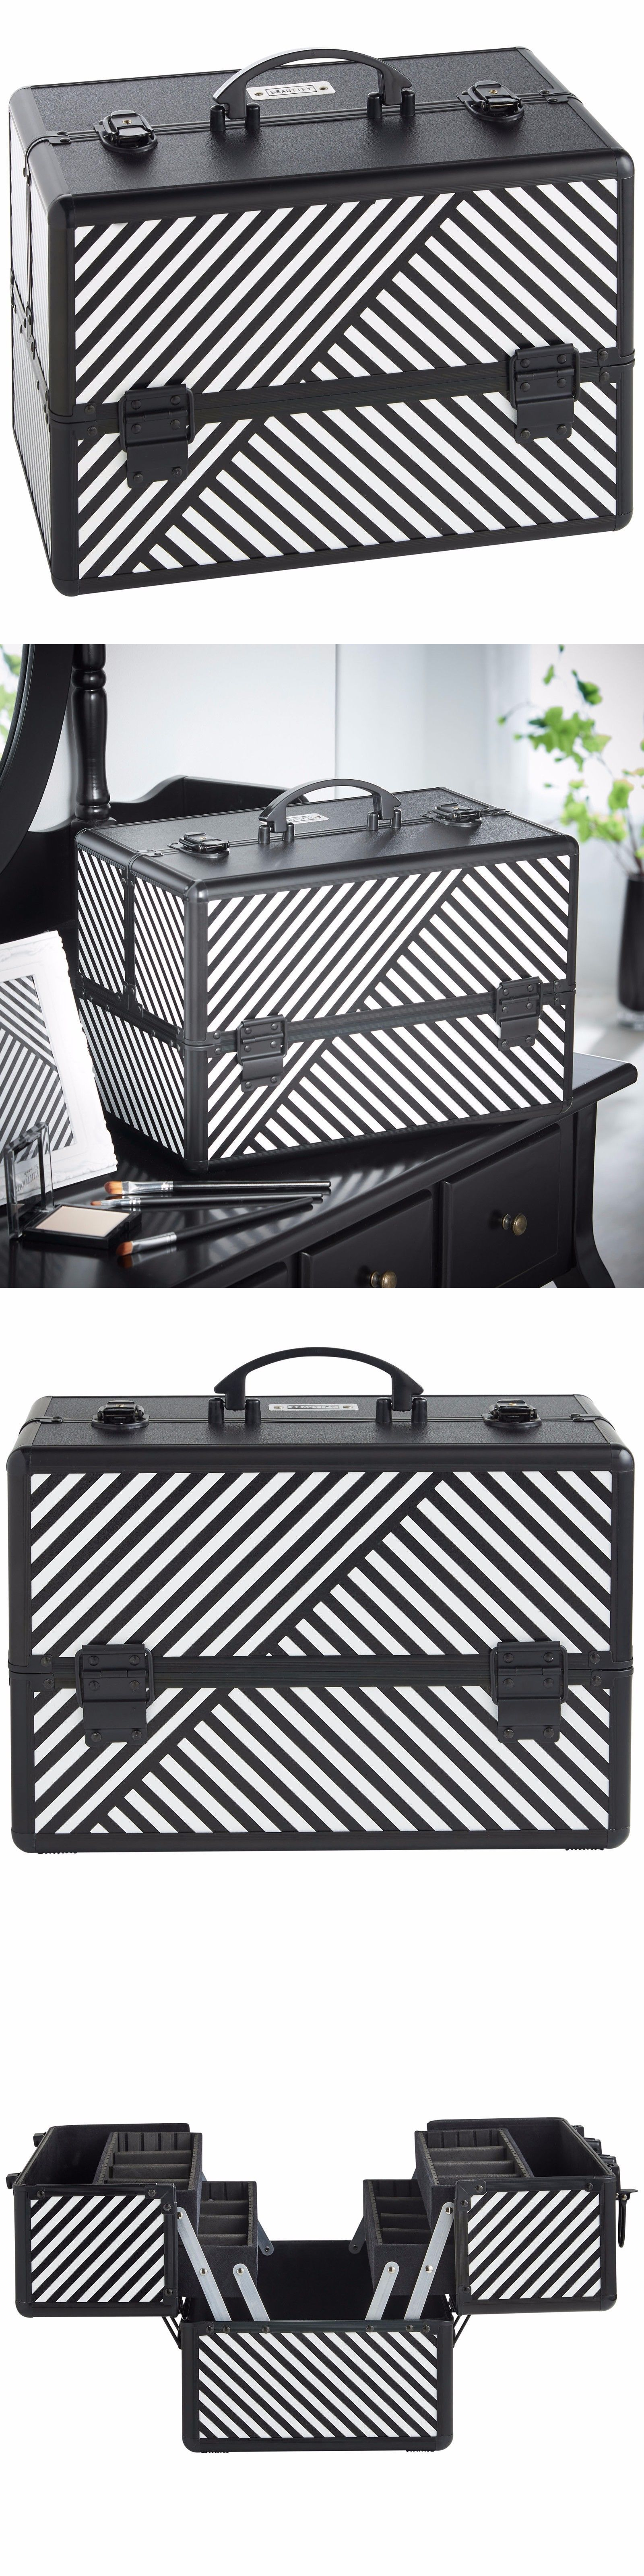 Makeup Bags and Cases Beautify Large Black 14 Train Case Cosmetic Makeup Organizer Storage Box & Makeup Bags and Cases: Beautify Large Black 14 Train Case Cosmetic ...